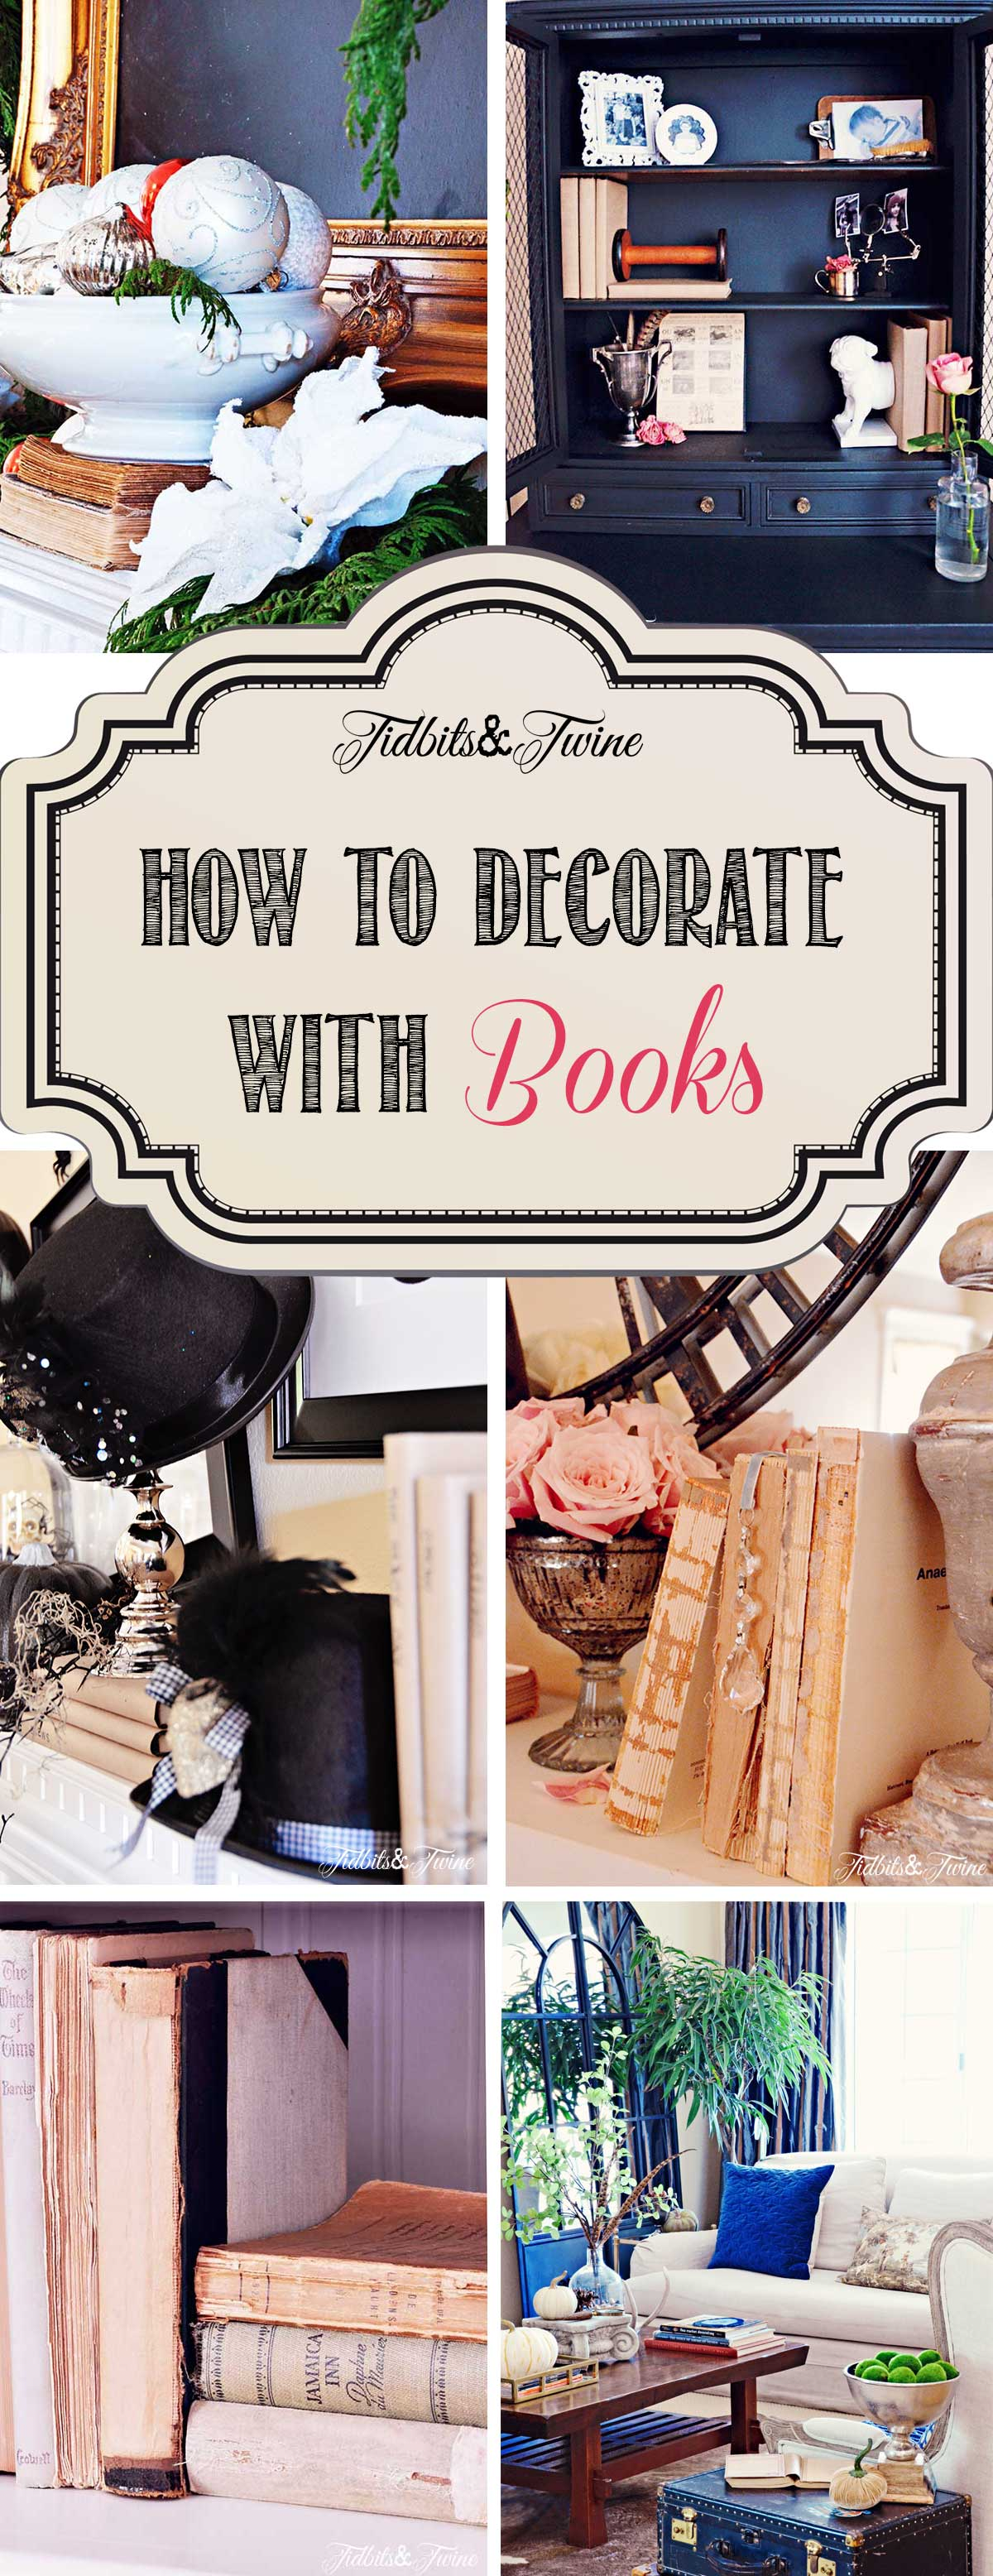 How To Decorate With Books how to decorate with books | tidbits&twine